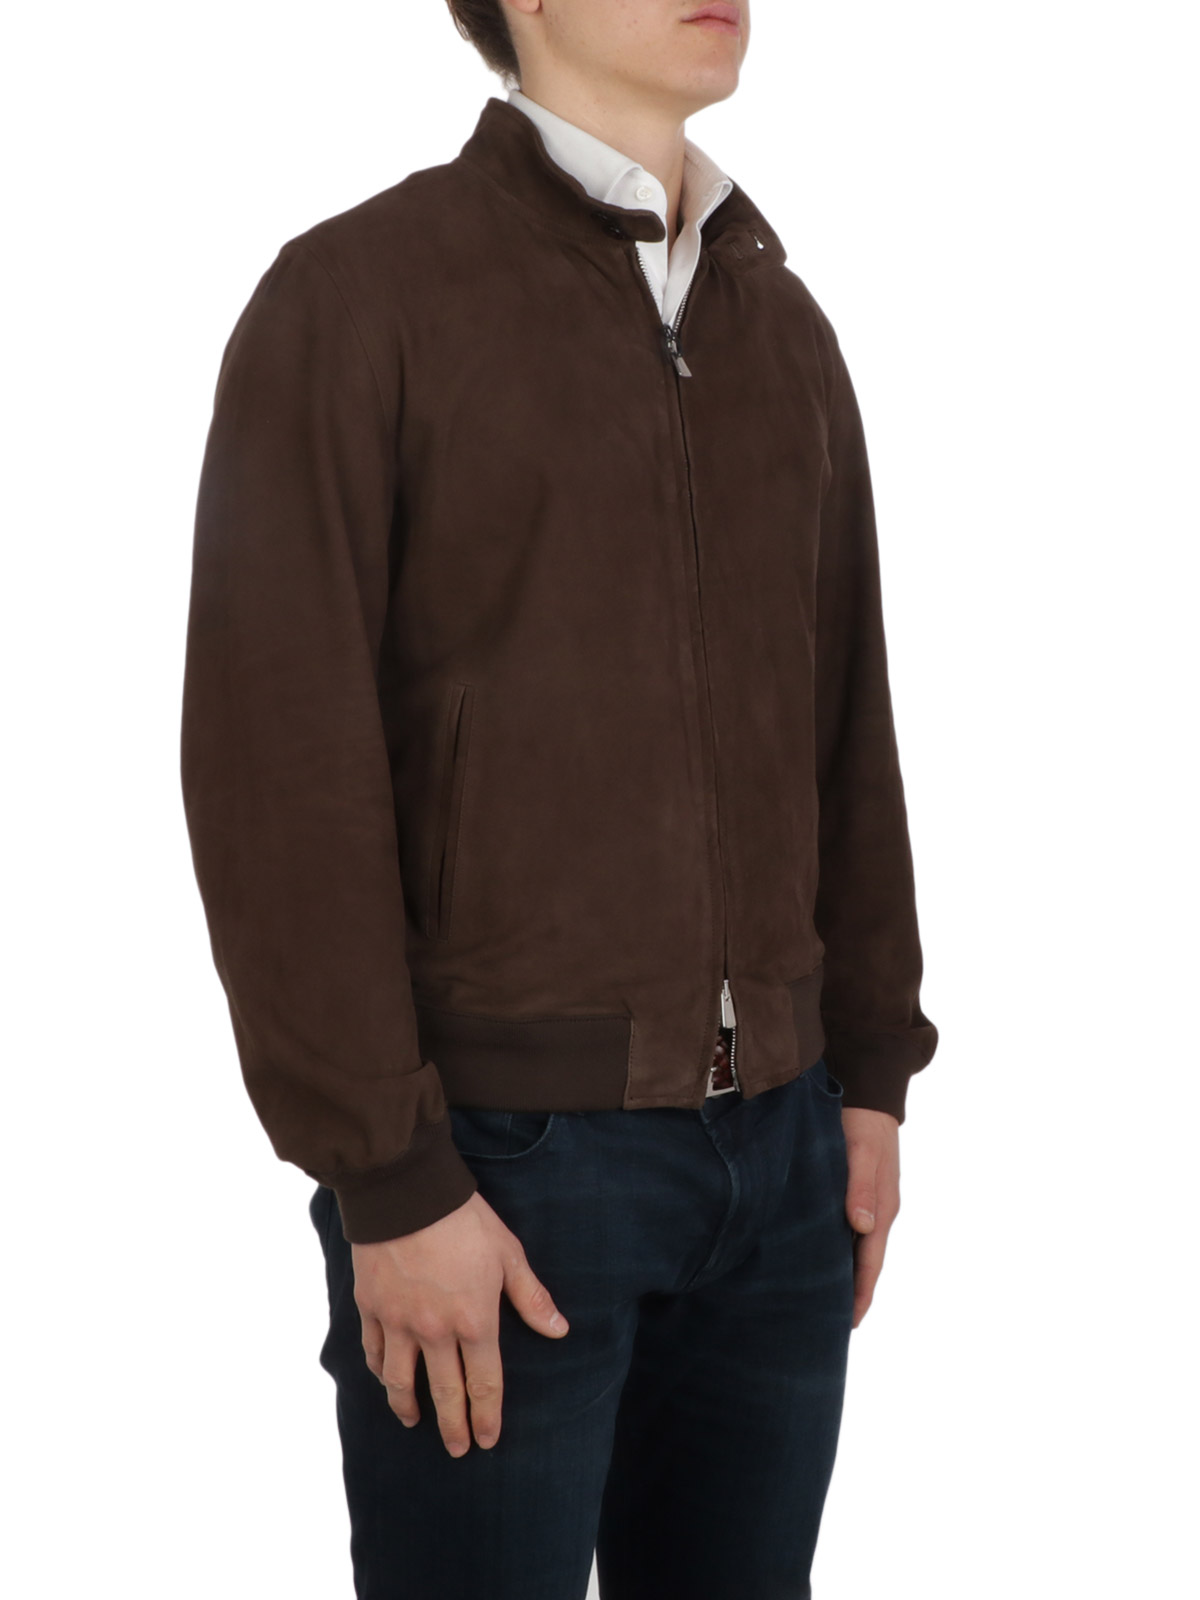 Picture of BROOKSFIELD | Men's Suede Jacket